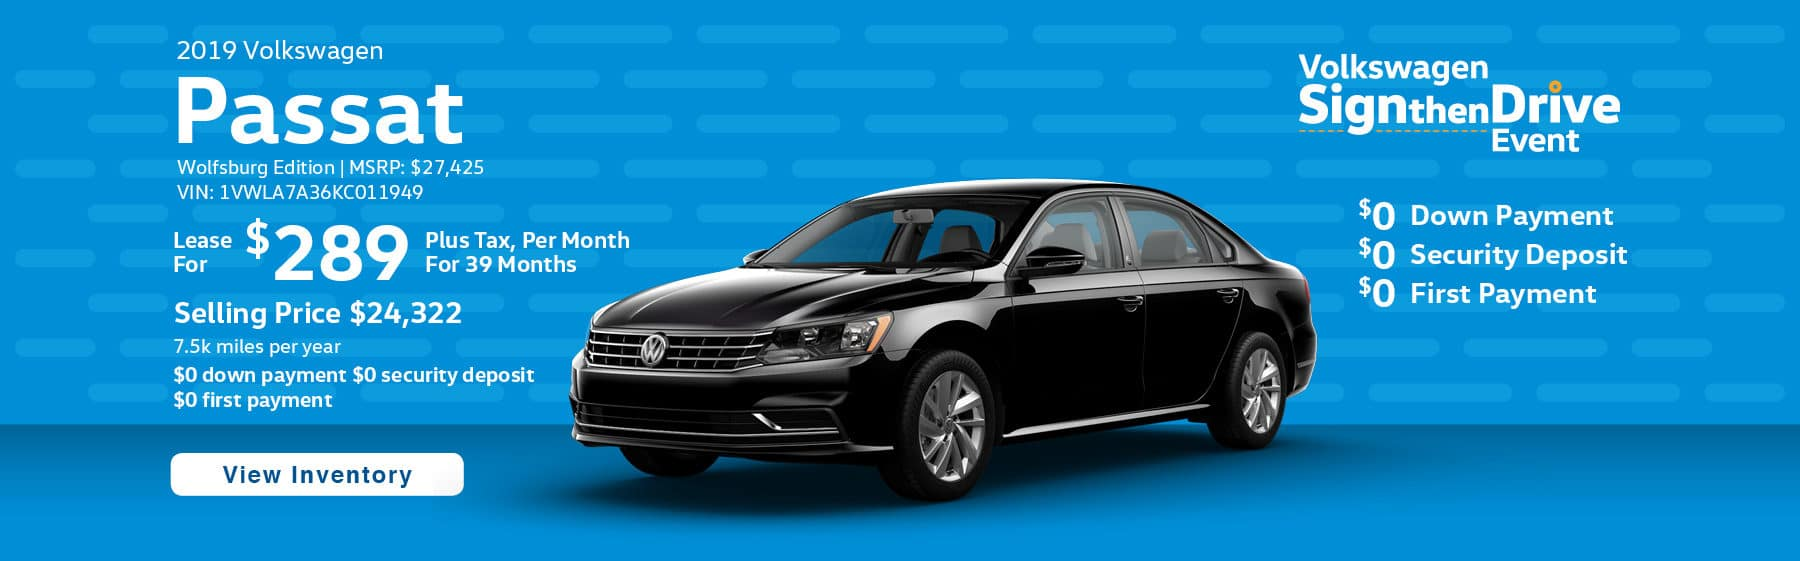 Lease the 2019 Passat Wolfsburg Edition for $289 per month, plus tax for 39 months.